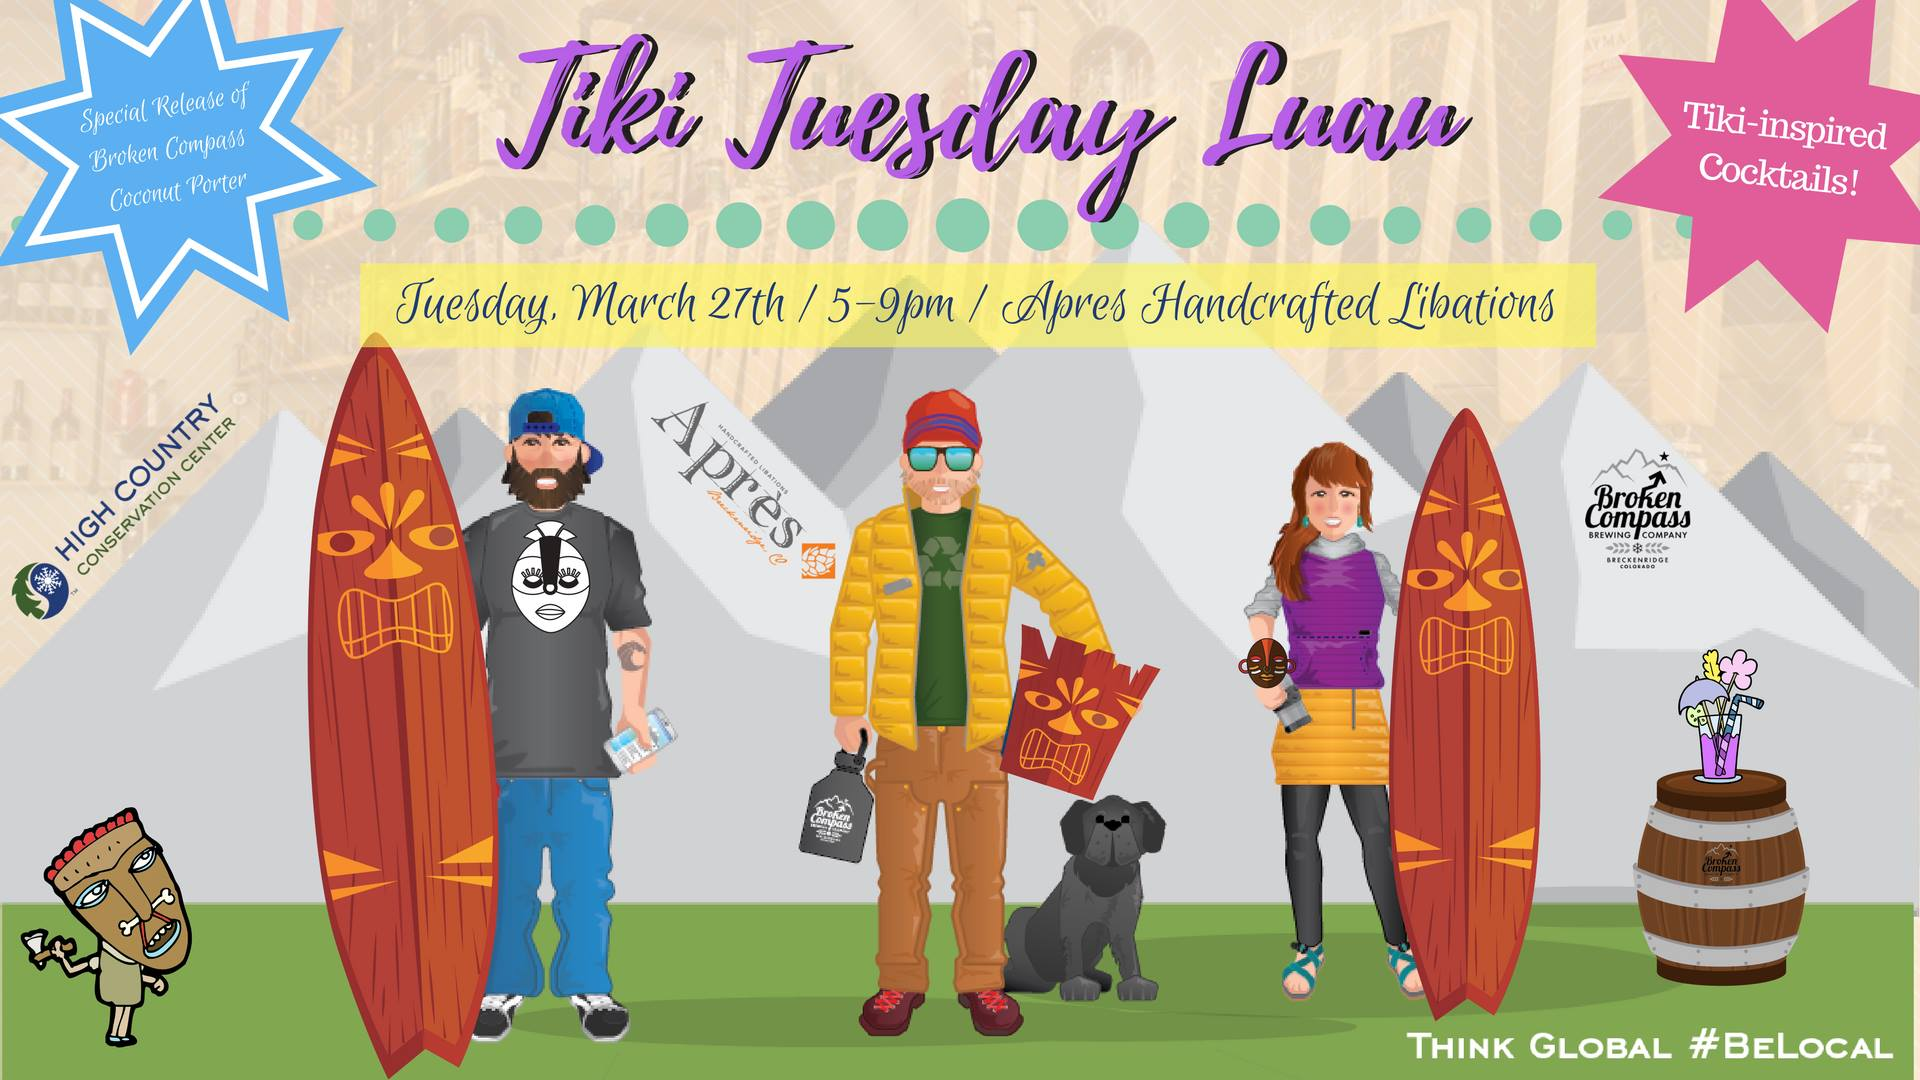 Apres Tiki Tuesday Luau.jpg